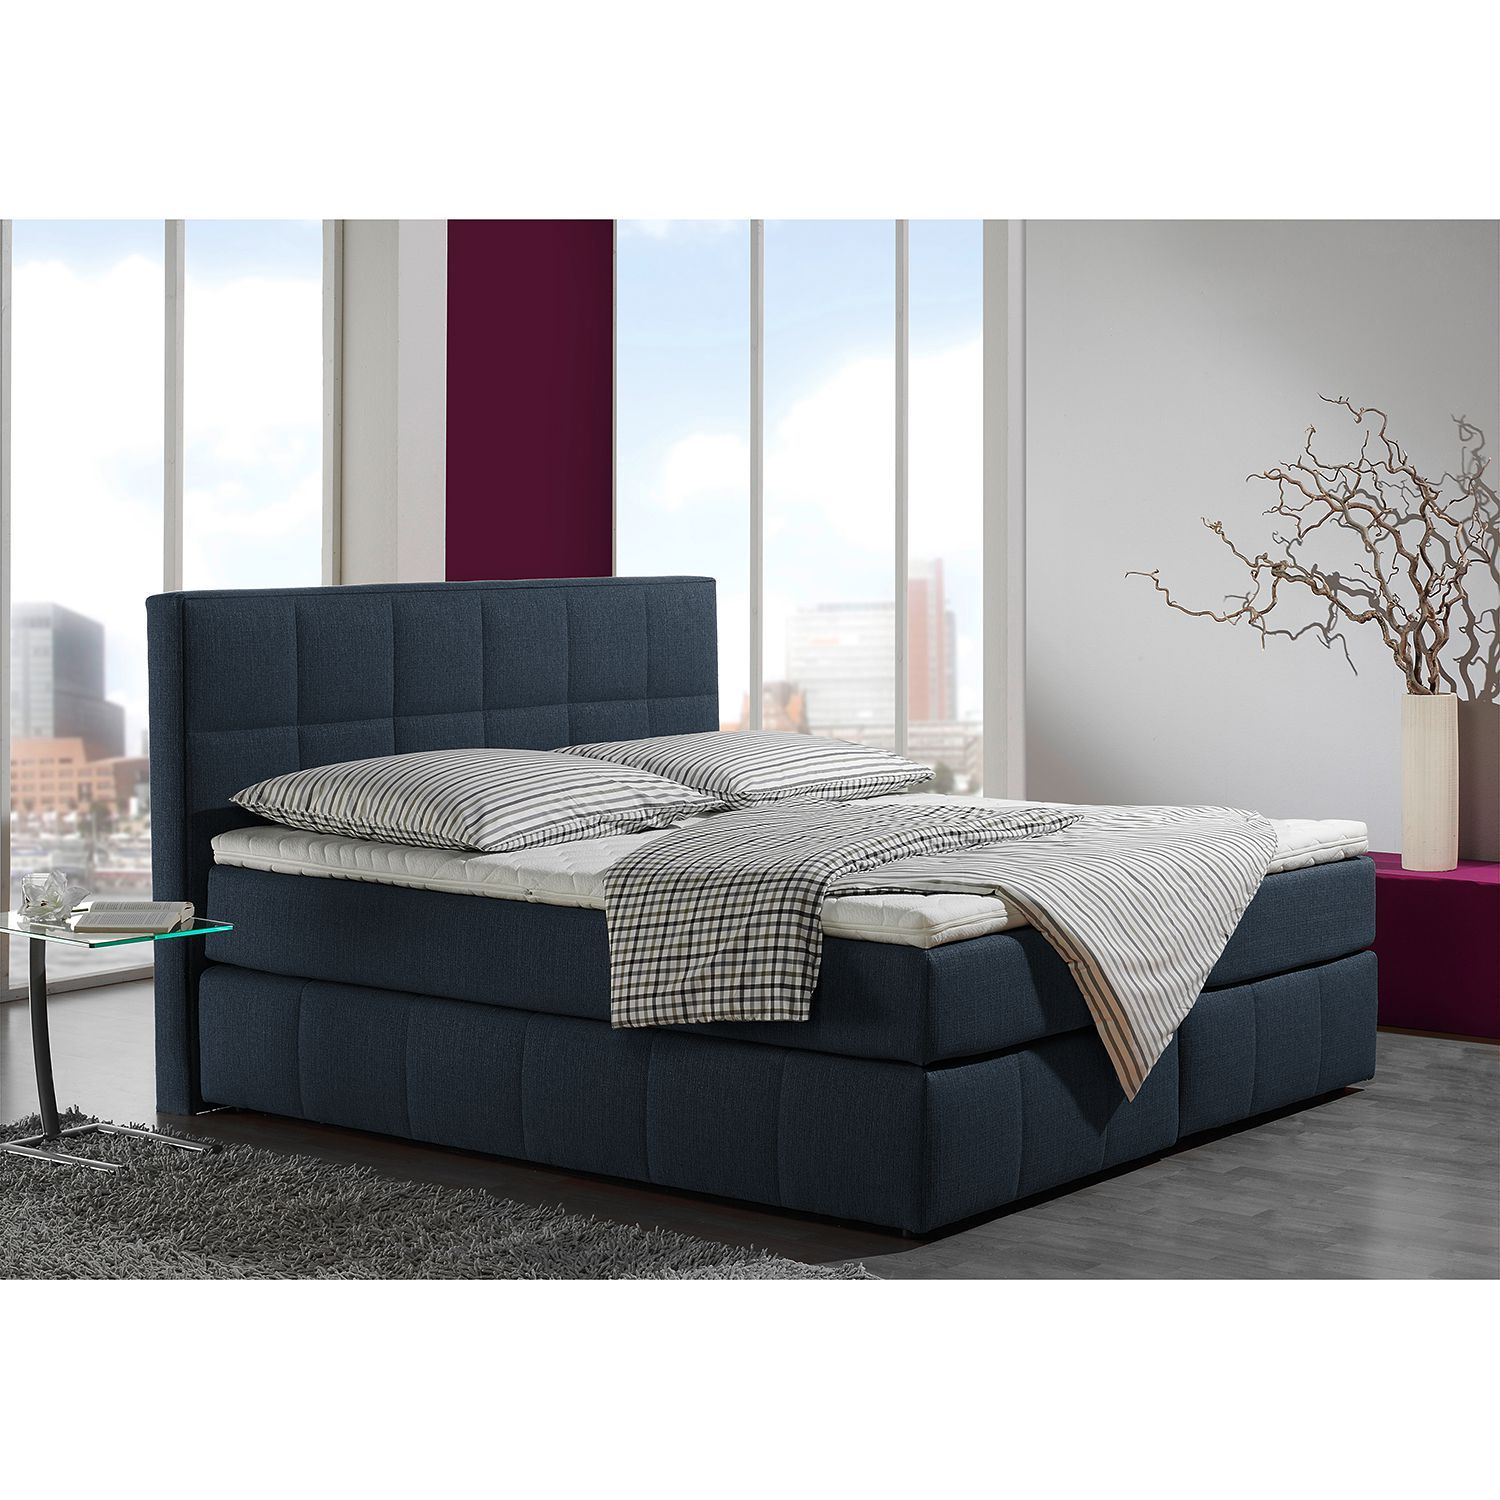 Boxspringbett Lifford Products Bed Frame Bed Furniture Und Home Decor